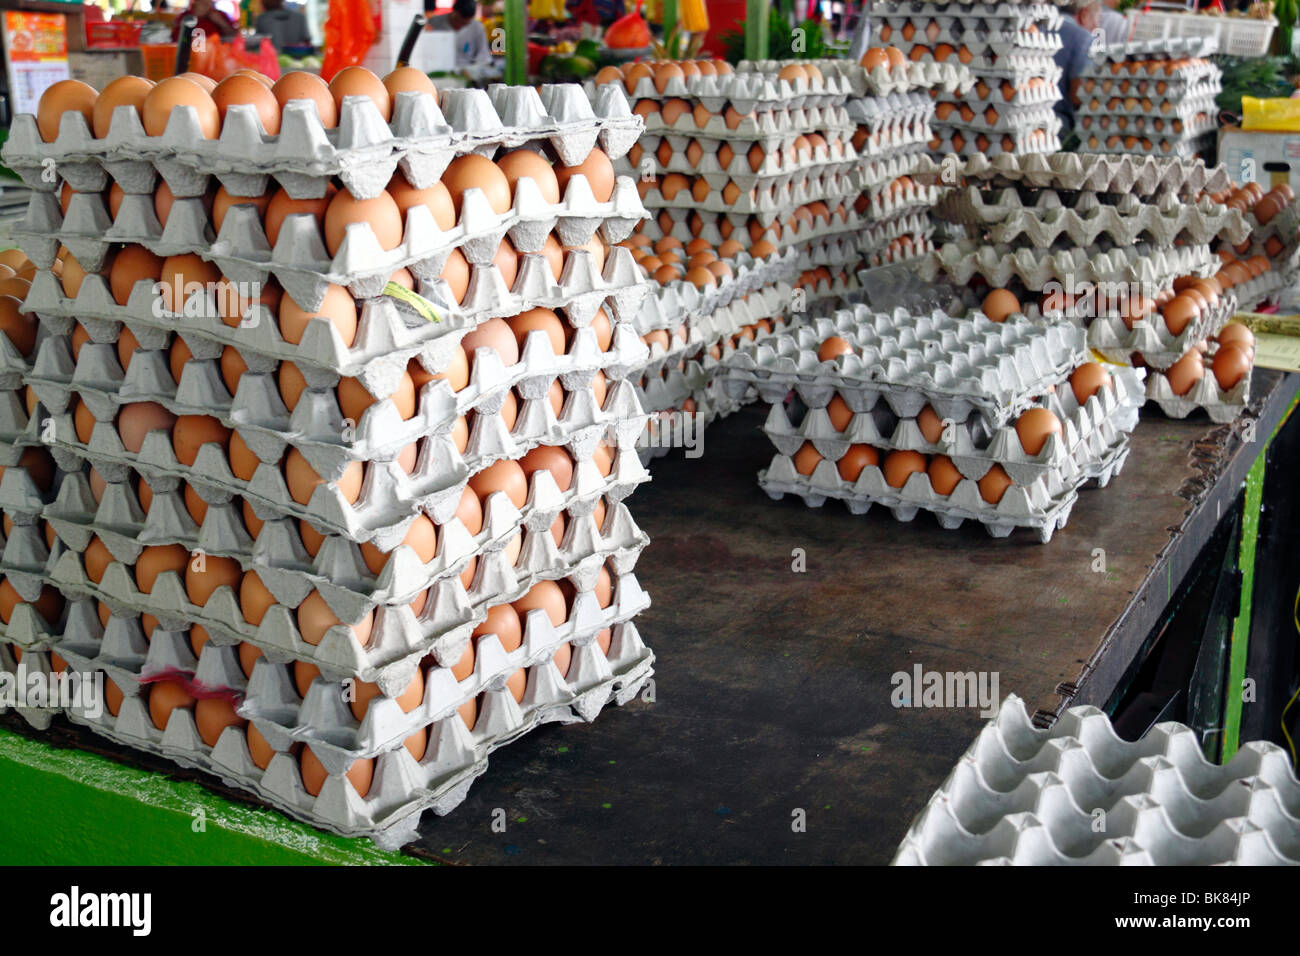 Egg sold in a poultry market - Stock Image